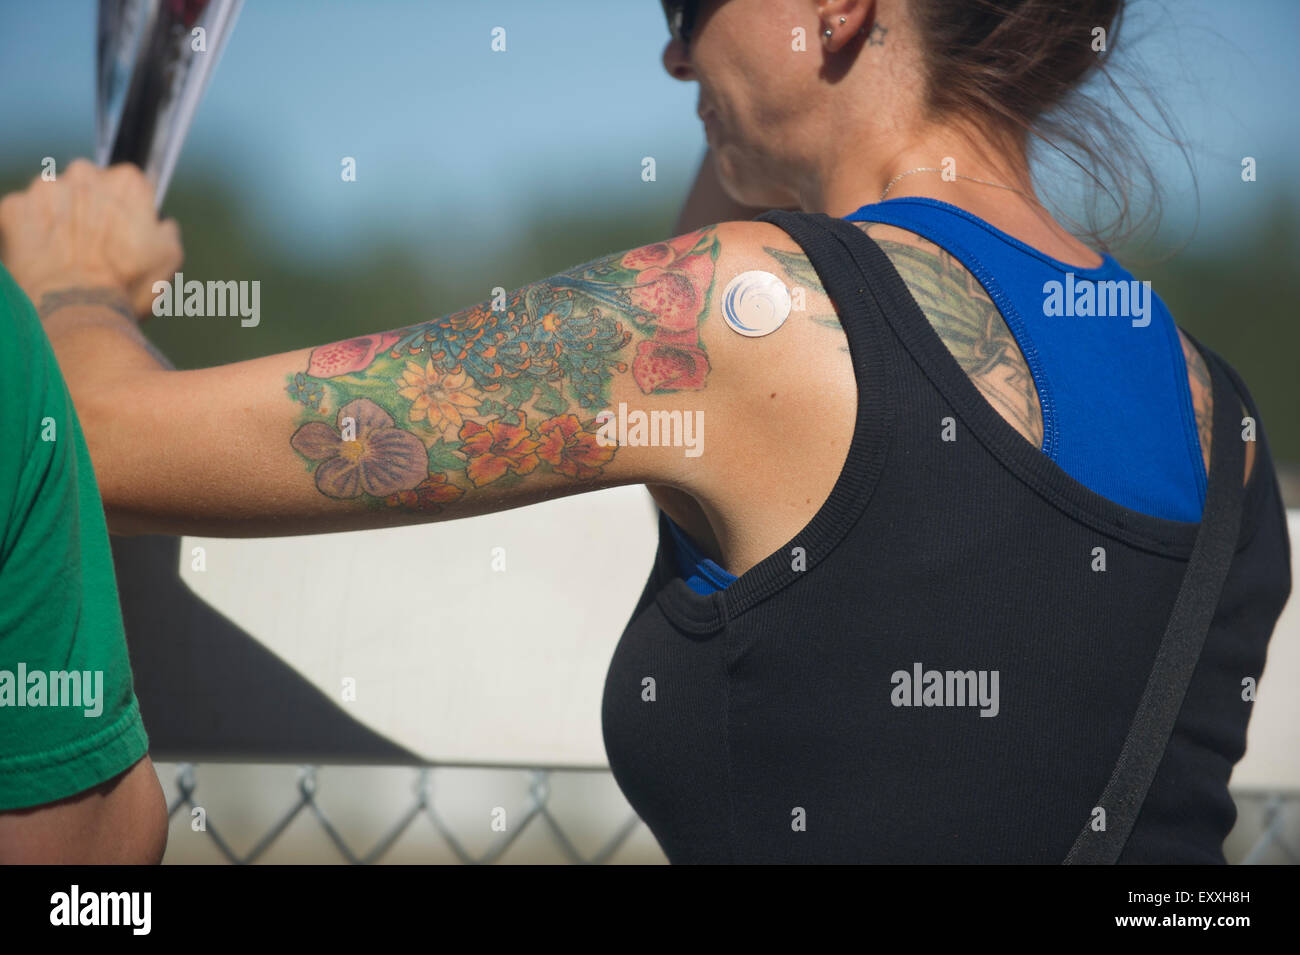 Woman with Tattoos on her arm Stock Photo  85406849 - Alamy 3e75a549ff7d